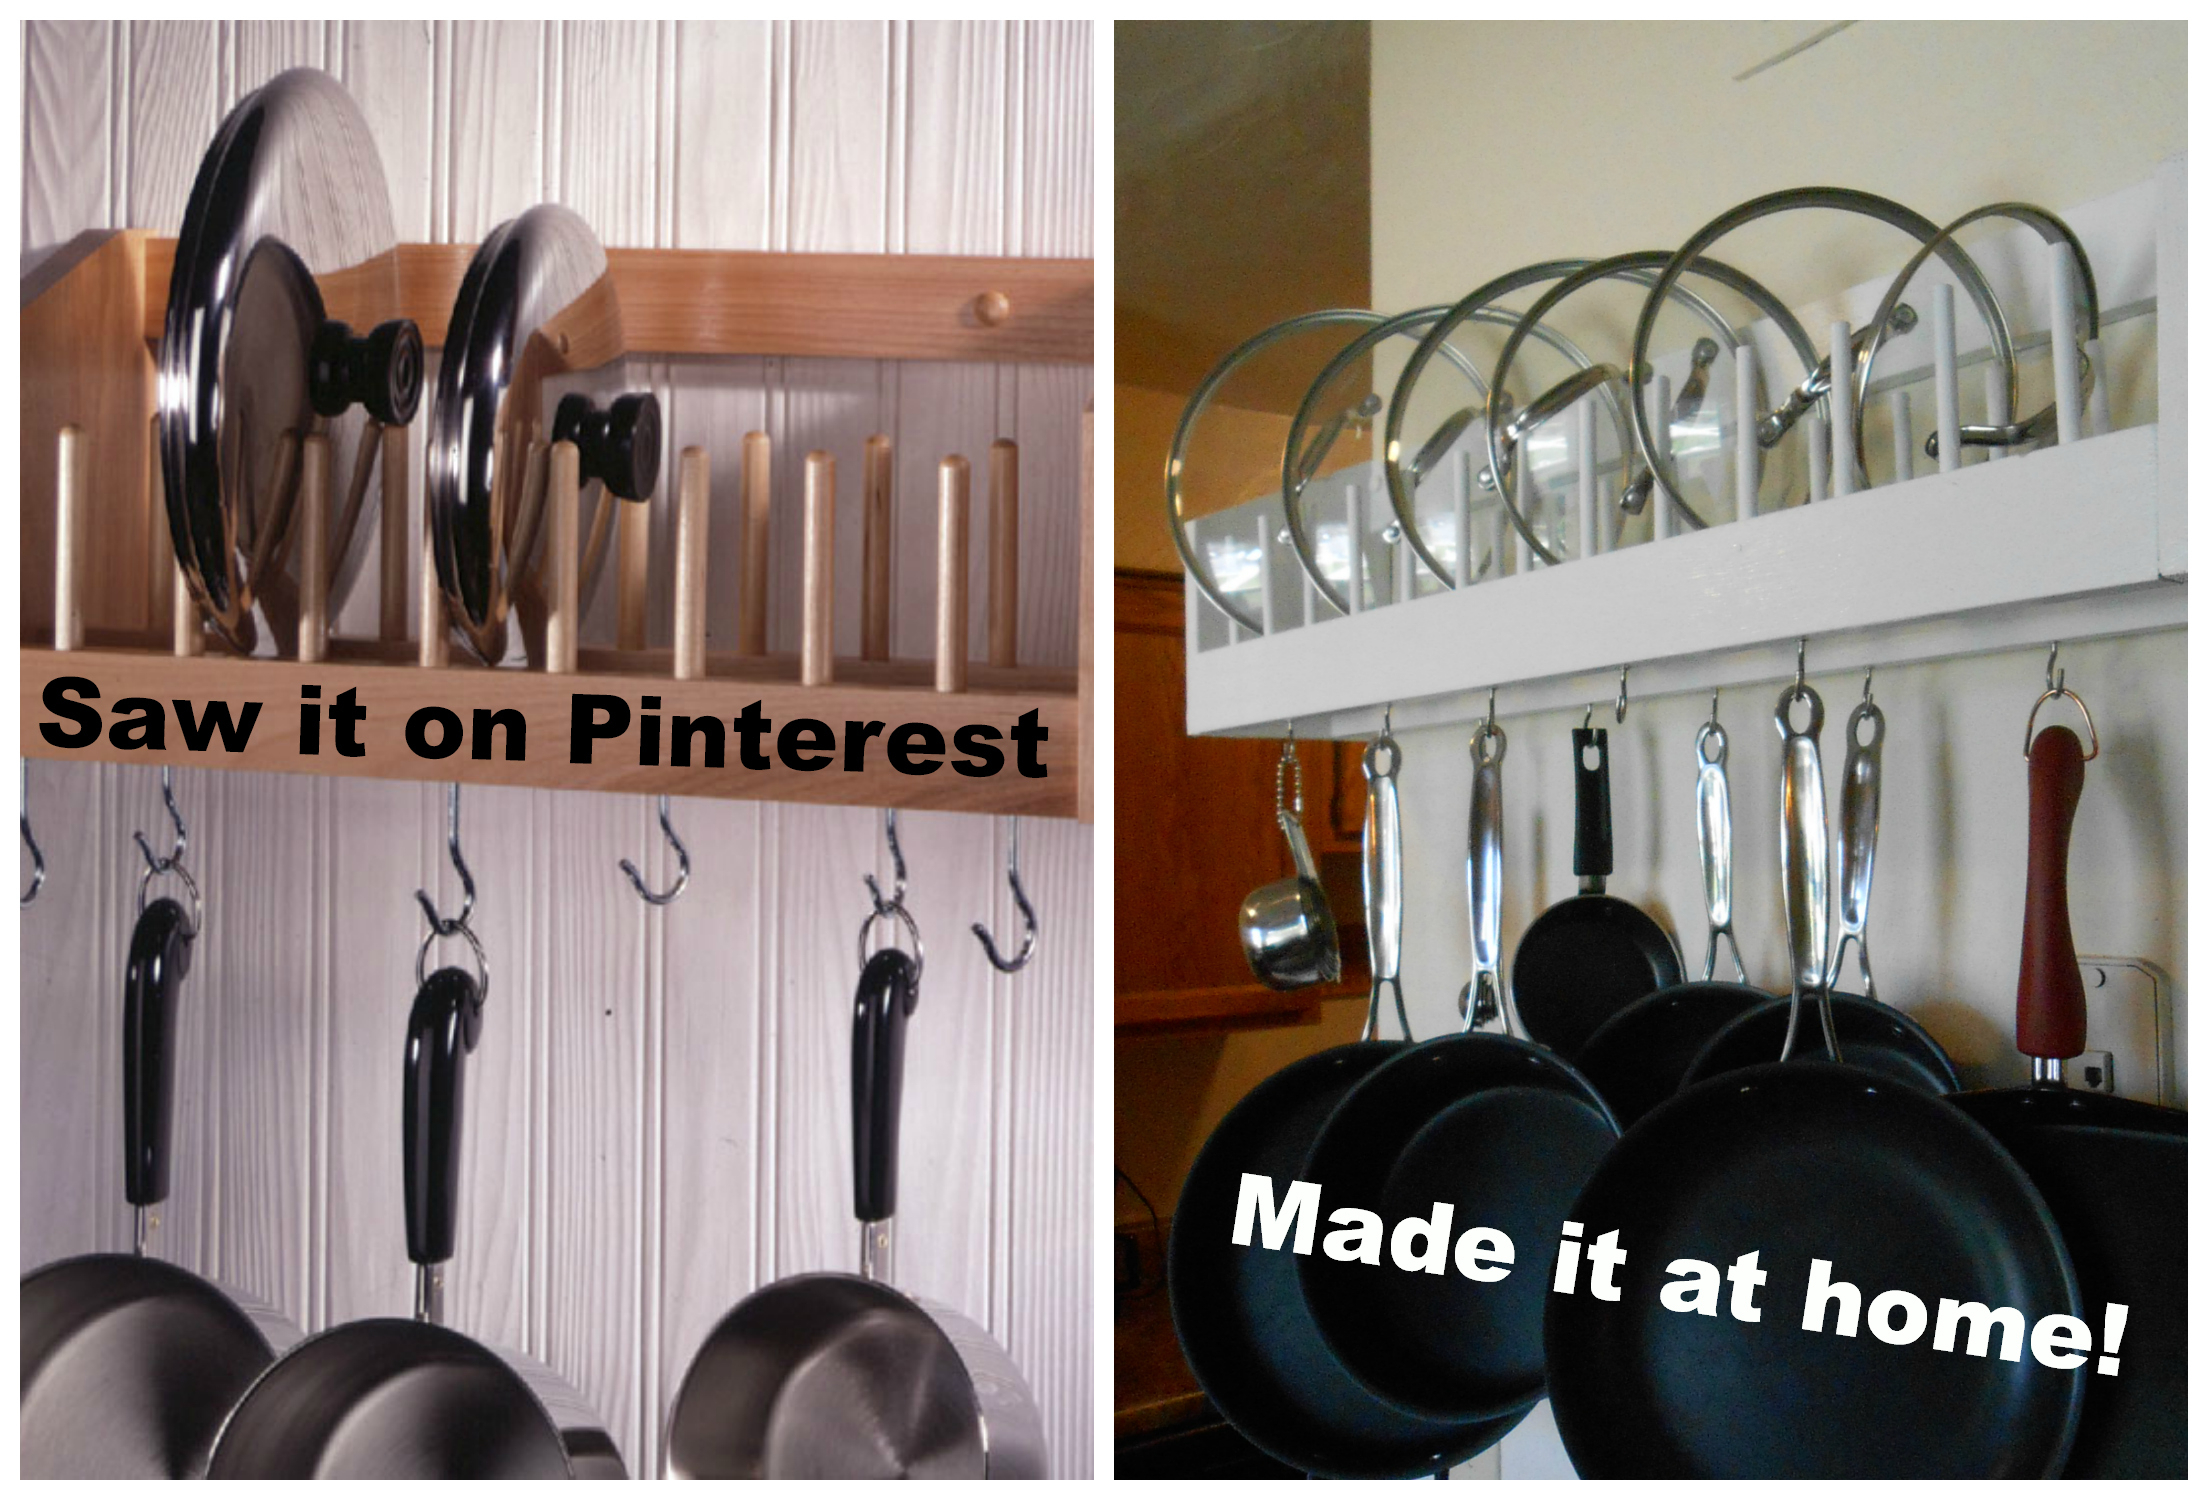 10 Spectacular Wall Mount Pot Rack Ideas diy wall pot rack wg15 roccommunity